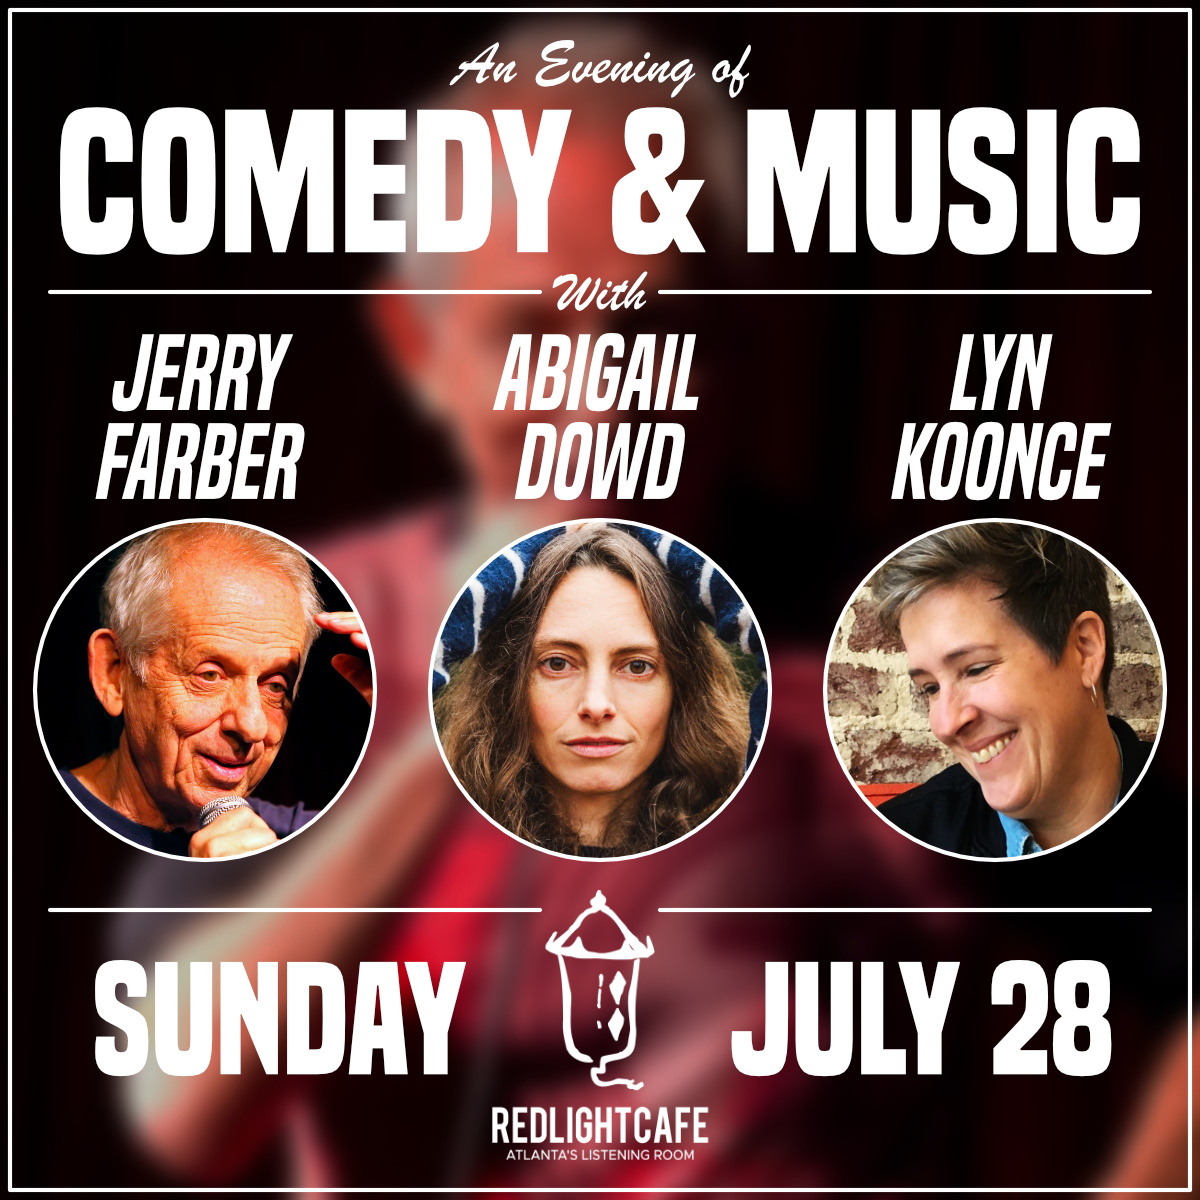 An Evening of Comedy & Music with Jerry Farber + Abigail Dowd + Lyn Koonce — July 28, 2019 — Red Light Café, Atlanta, GA